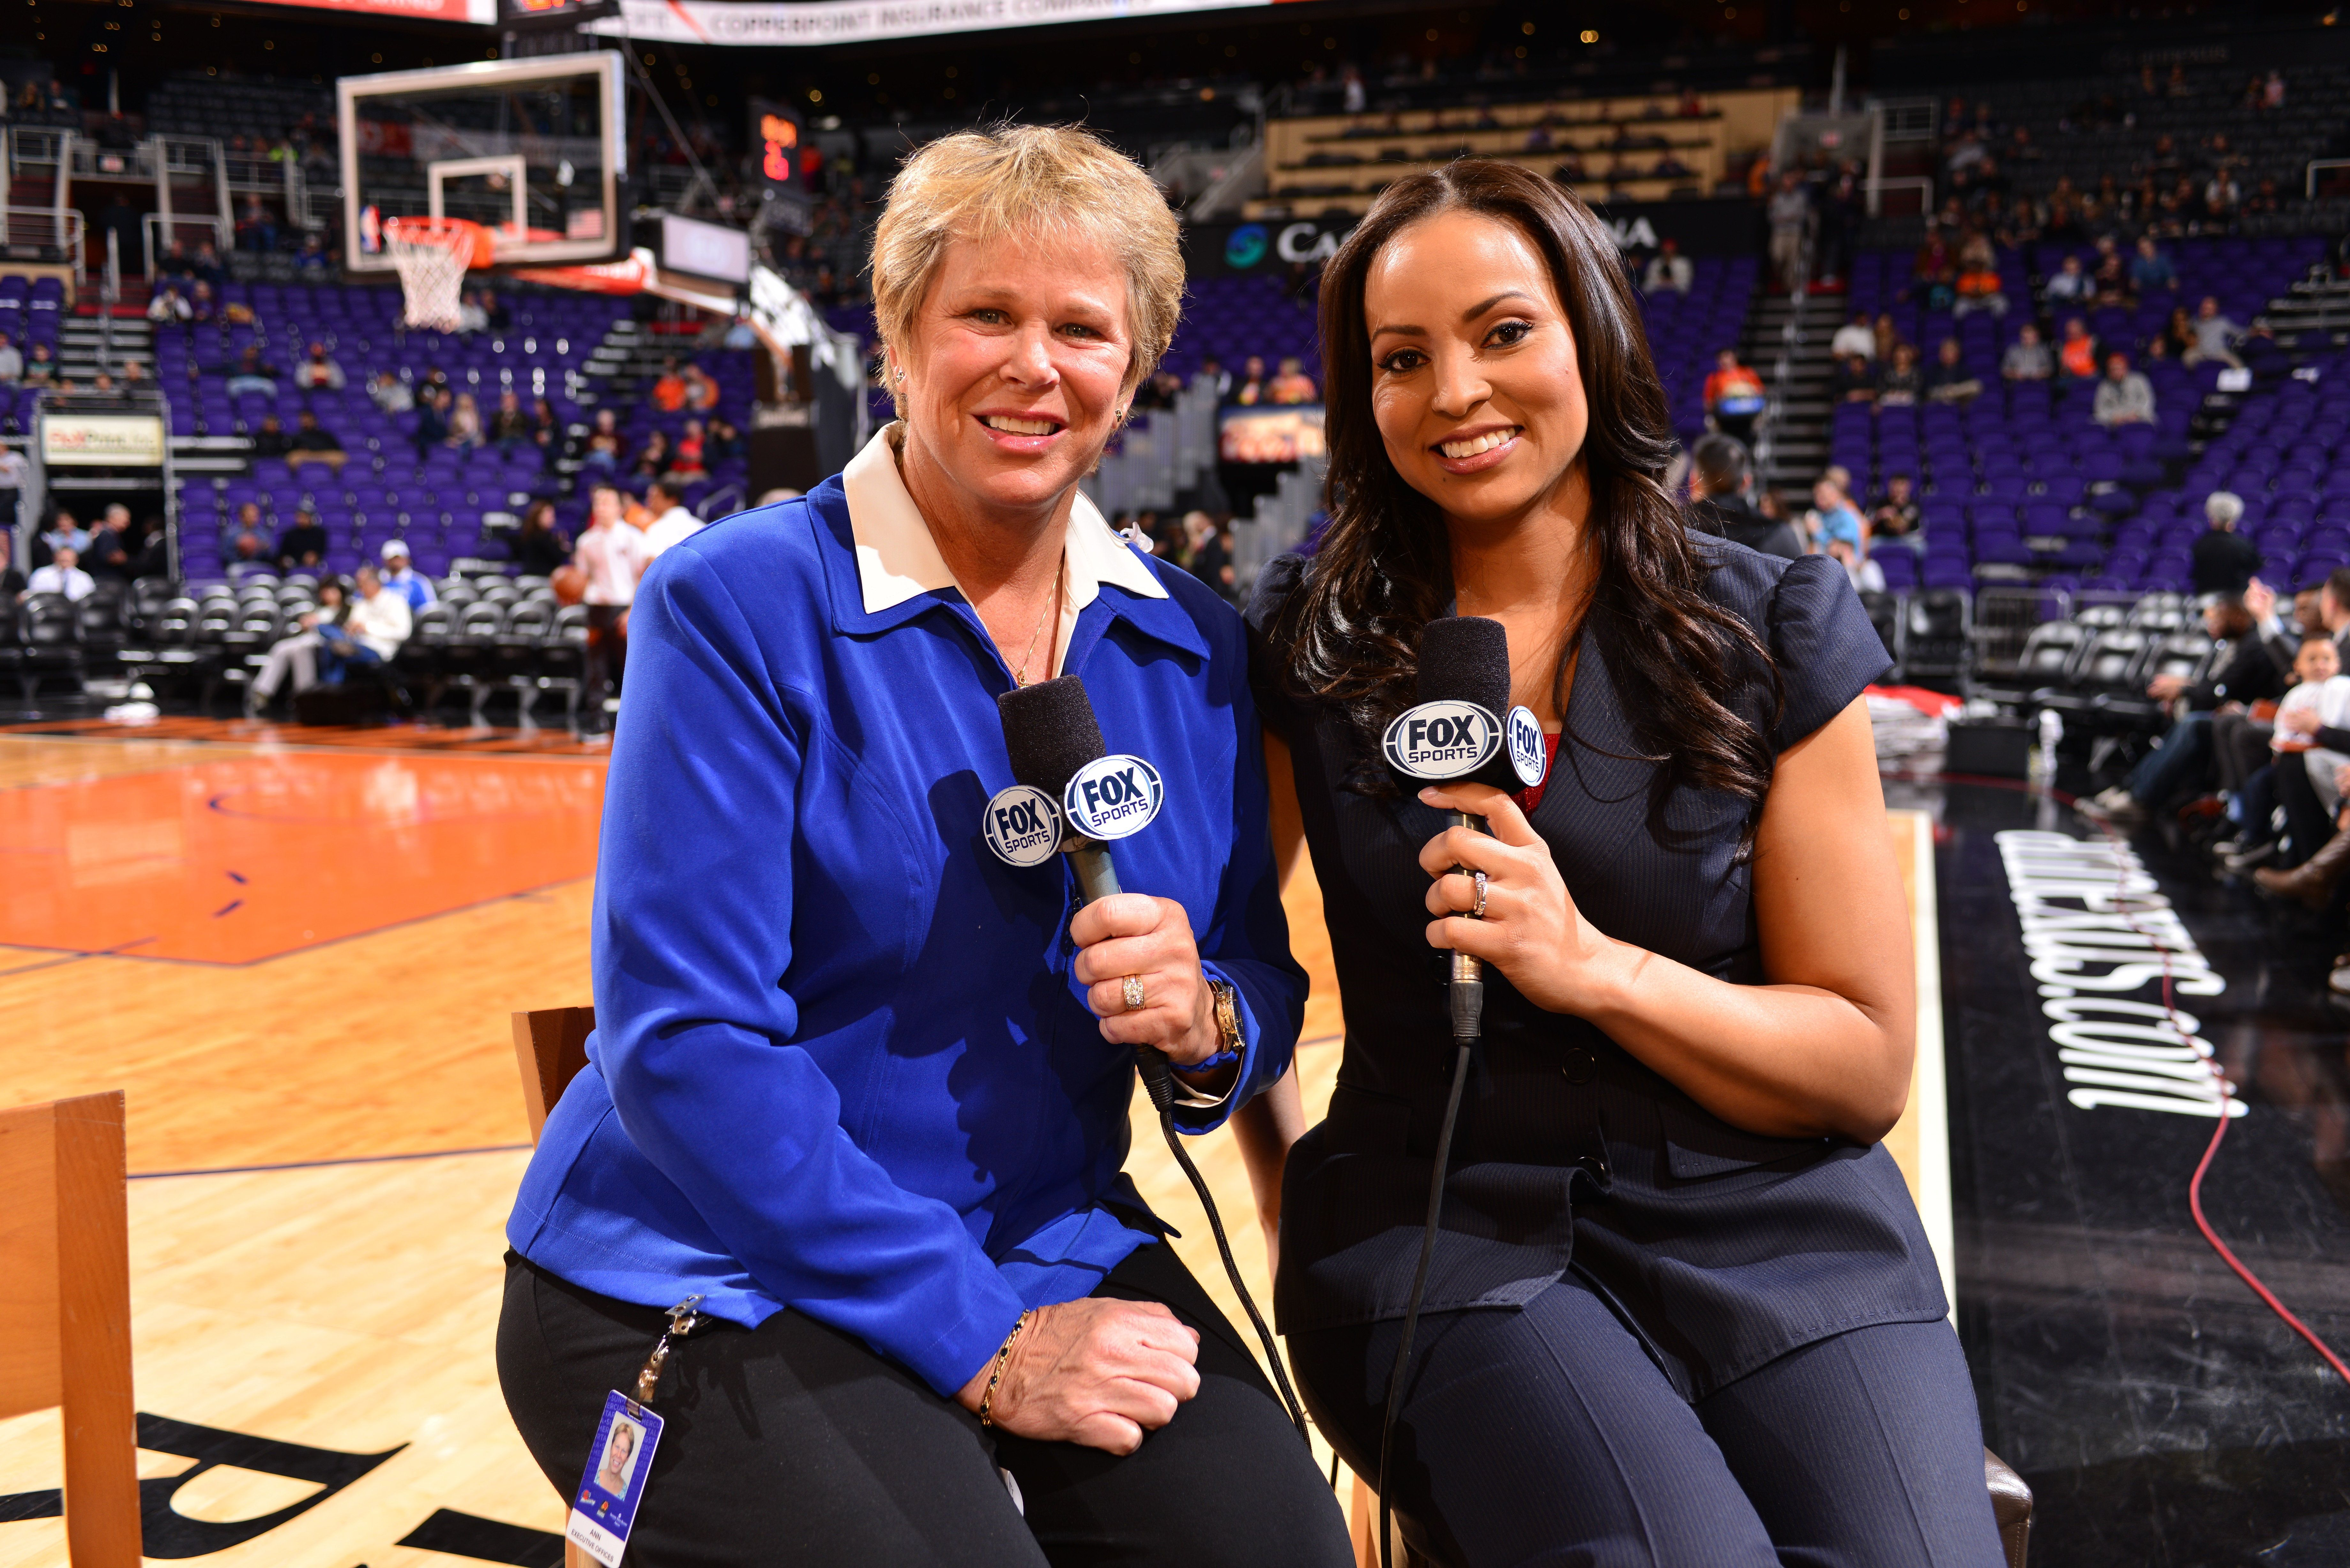 PHOENIX, AZ - JANUARY 6: Ann Meyers Drysdale and  Stephanie Ready are seen before the game between Charlotte Hornets and Phoenix Suns on January 6, 2015, at Talking Stick Resort Arena in Phoenix, Arizona. NOTE TO USER: User expressly acknowledges and agrees that, by downloading and or using this Photograph, user is consenting to the terms and conditions of the Getty Images License Agreement. Mandatory Copyright Notice: Copyright 2016 NBAE (Photo by Barry Gossage/NBAE via Getty Images)